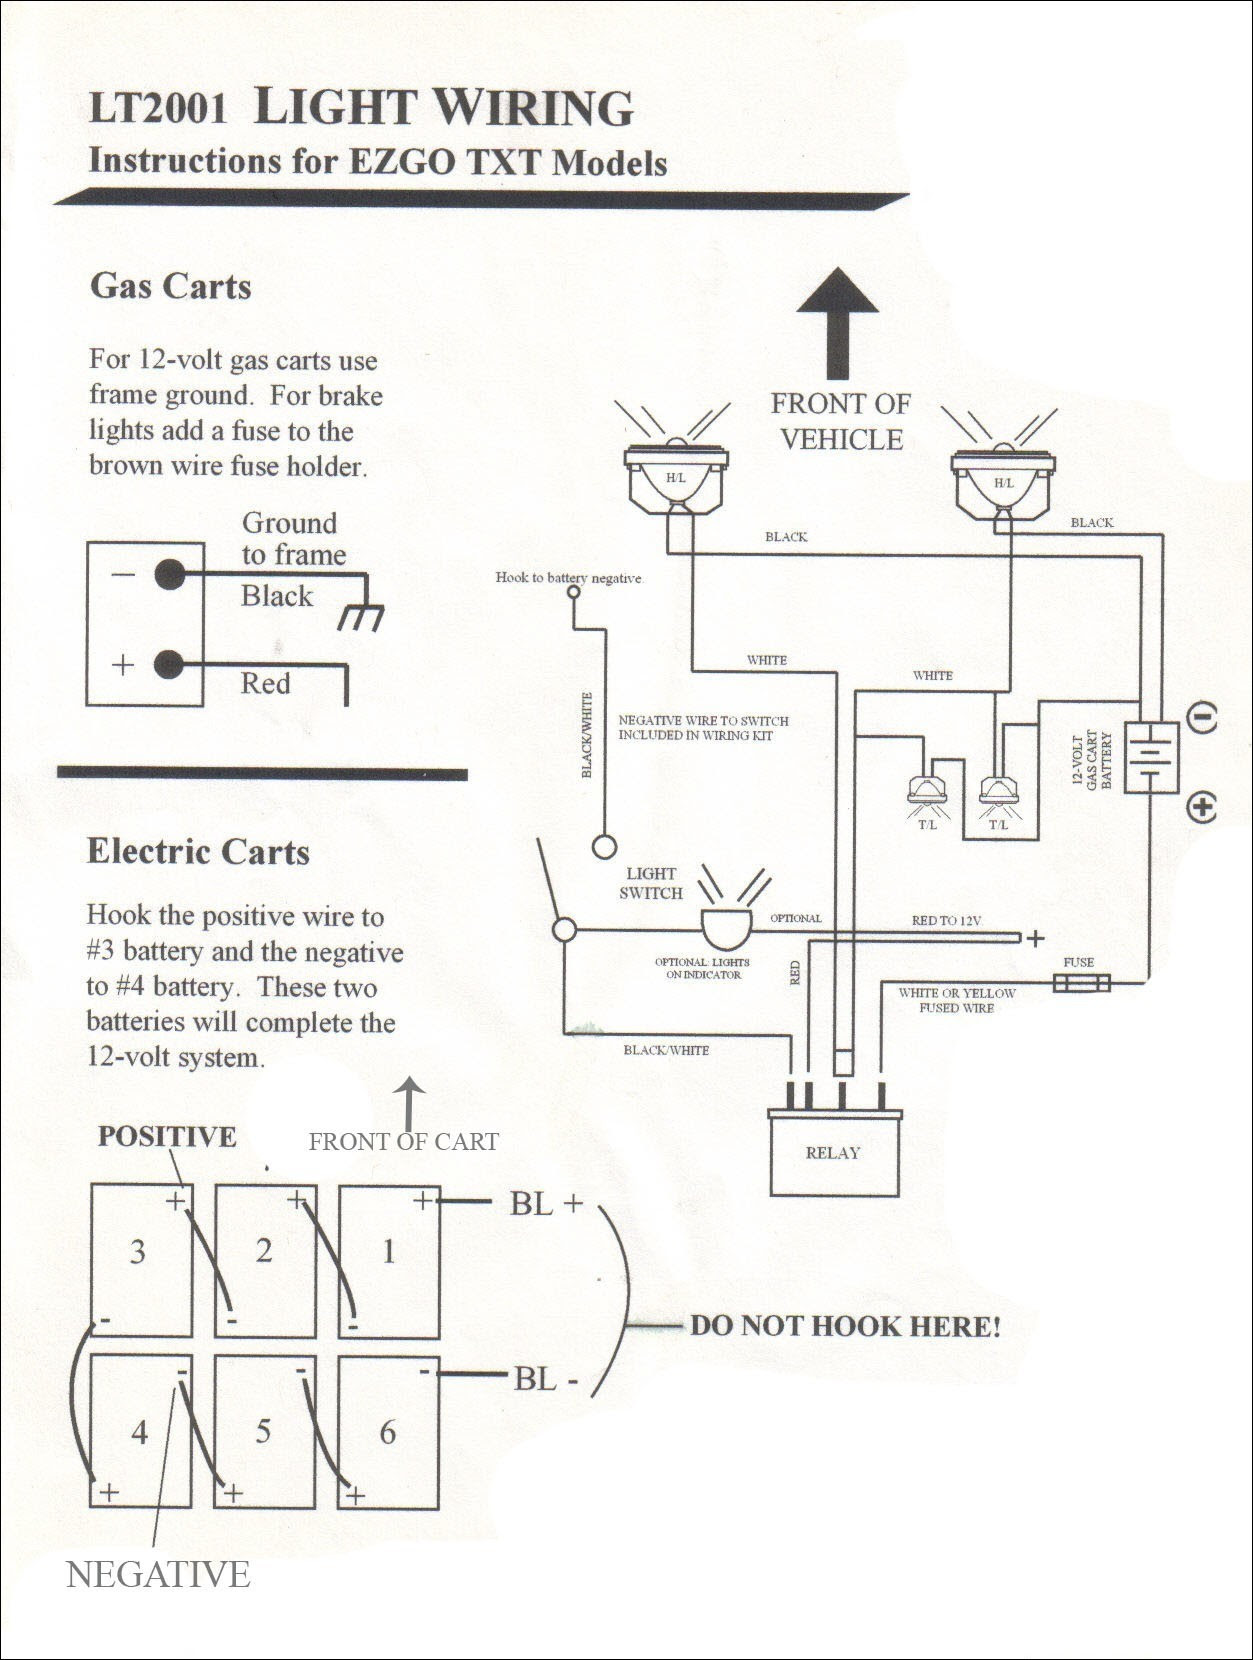 Diagram Golf Cart 36 Volt Light Wiring Diagram Full Version Hd Quality Wiring Diagram Bpmdiagrams Biorygen It